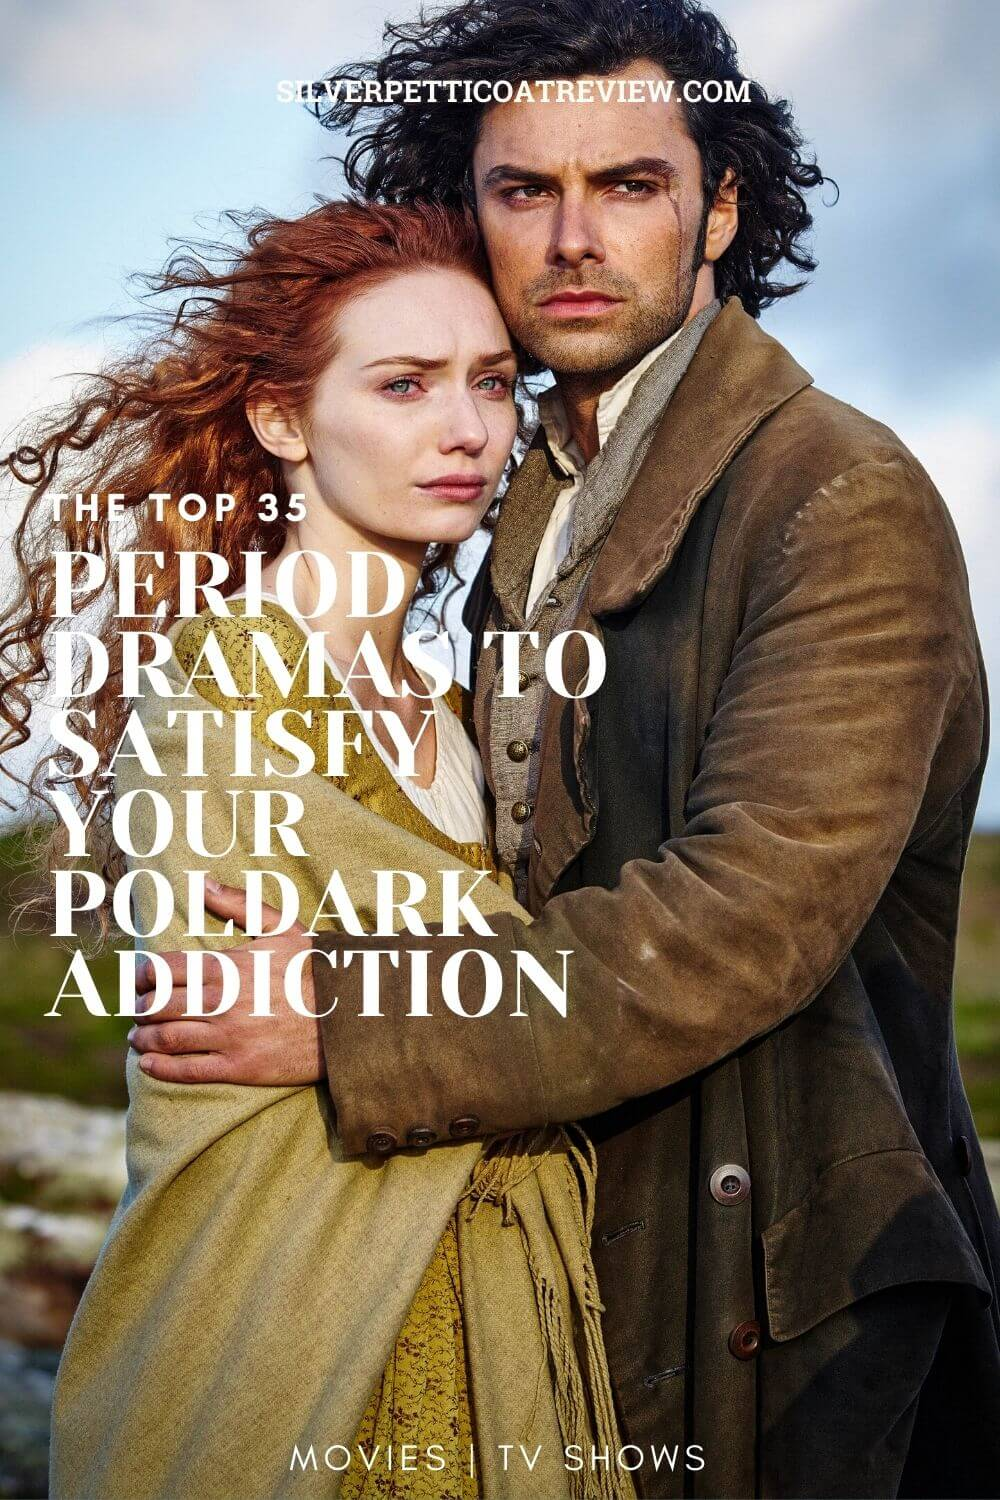 The Top 35 Period Dramas To Satisfy Your Poldark Addiction - Pinterest Graphic